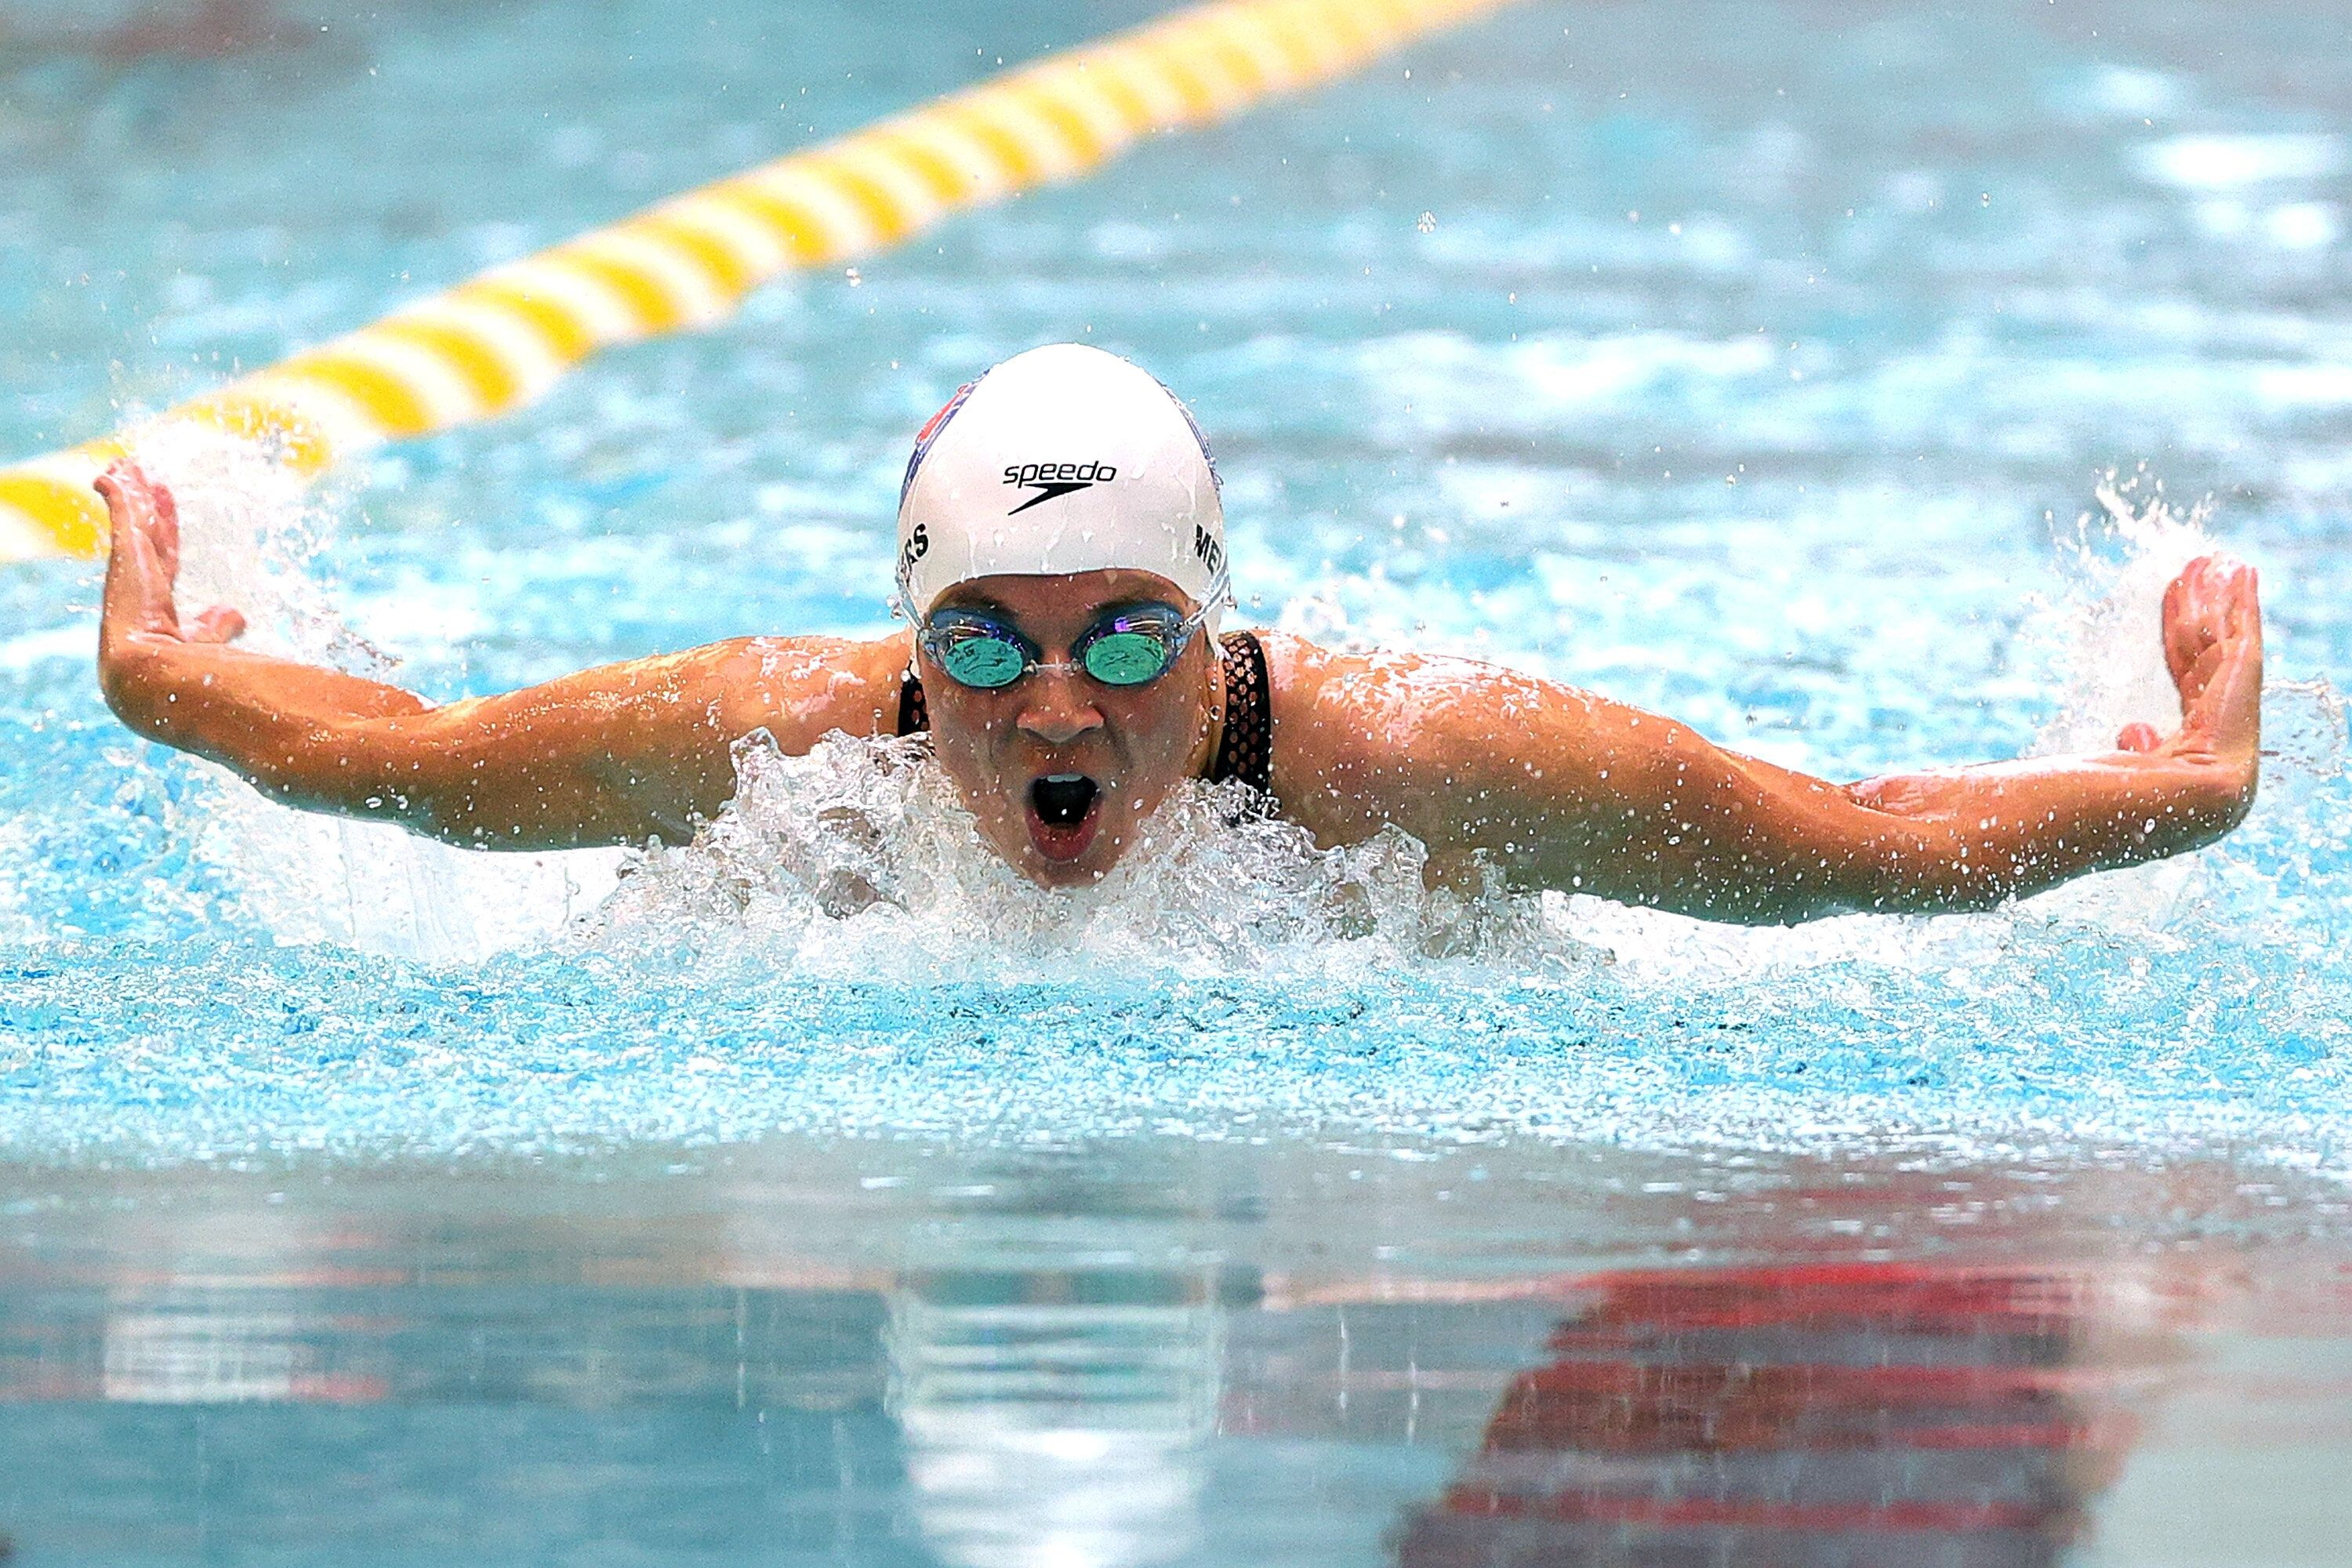 Becca Meyers competes in the Women's 100m Butterfly during Day 3 of the 2021 U.S. Paralympic Swimming Trials in June.